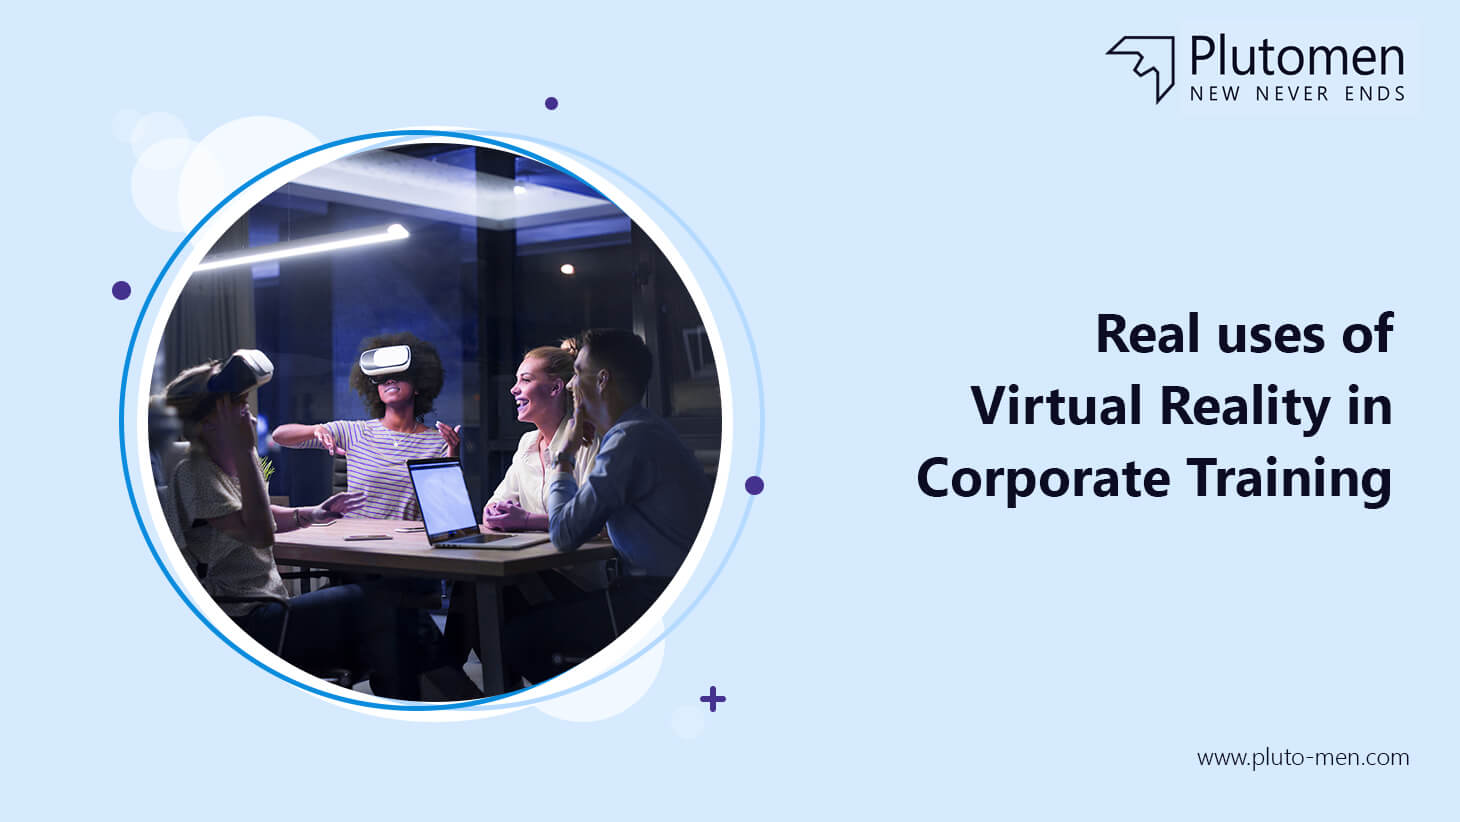 Real uses of Virtual Reality in corporate training